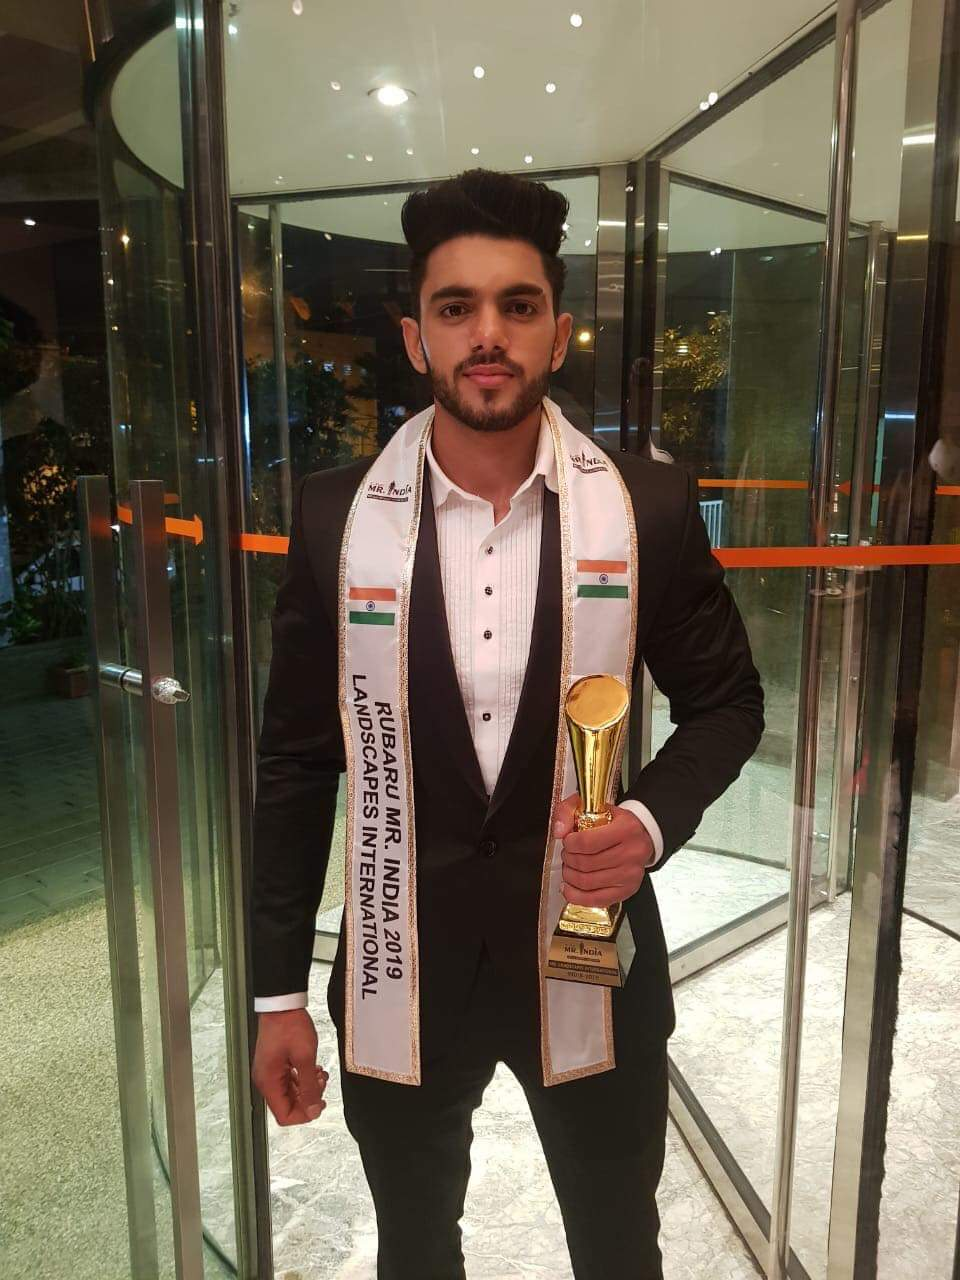 Winning the title at the tender of 19, Pankaj is the youngest Mr India winner in the history of Indian pageantry.